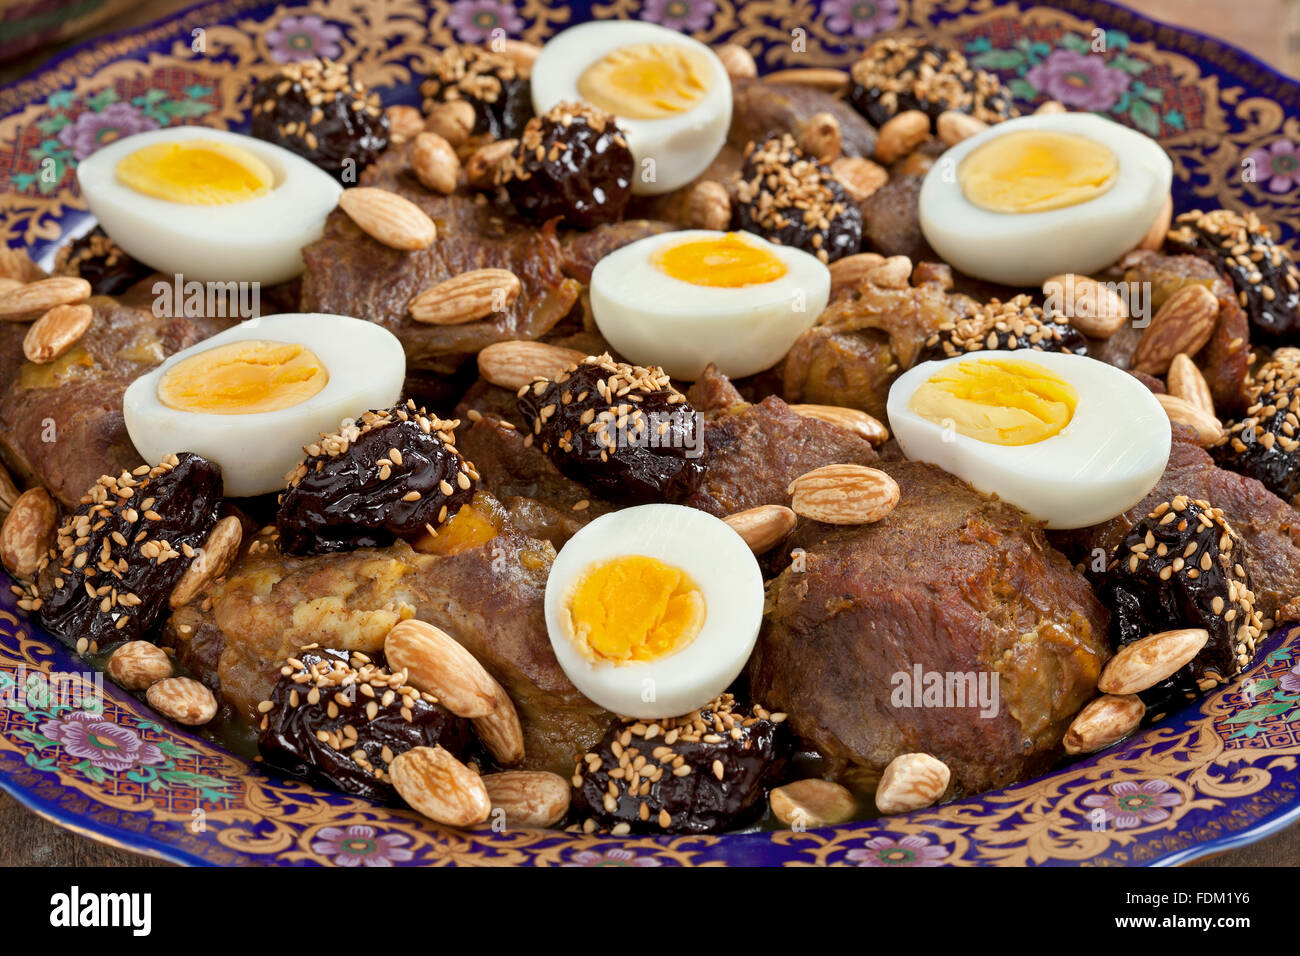 Moroccan festivity dish with meat, plums,almonds and eggs close up - Stock Image